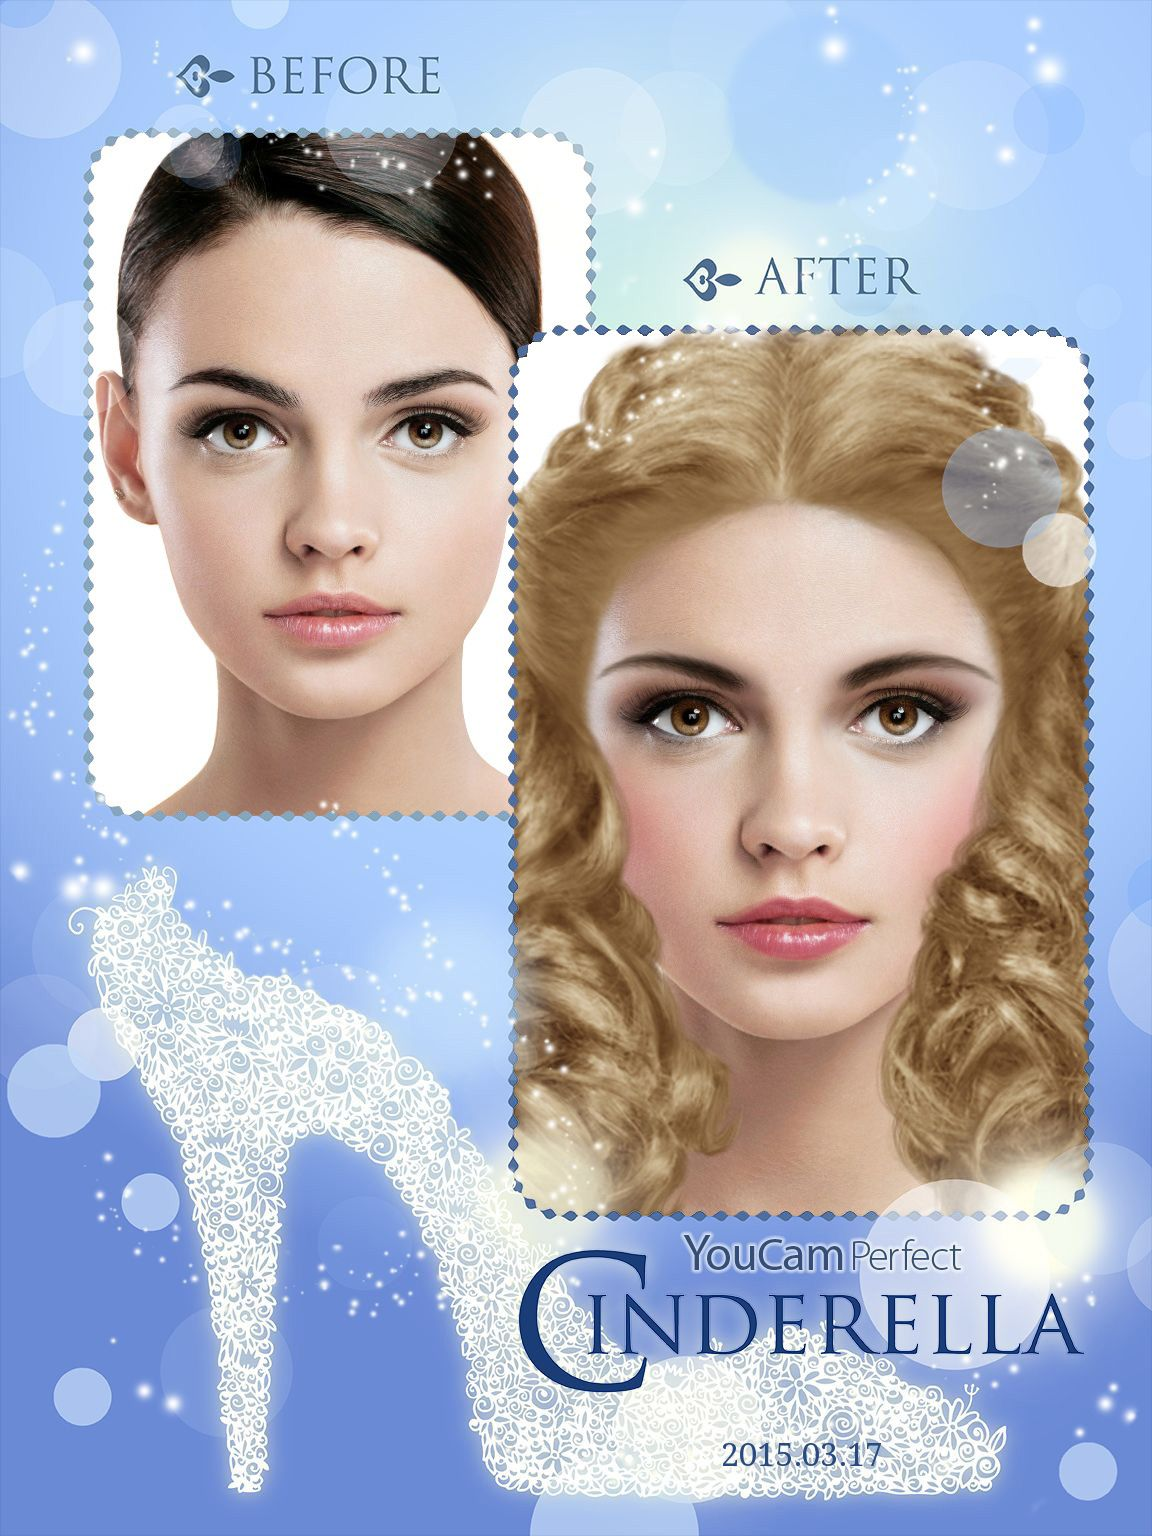 """CyberLink Announces Cinderella """"Princess for a Day"""